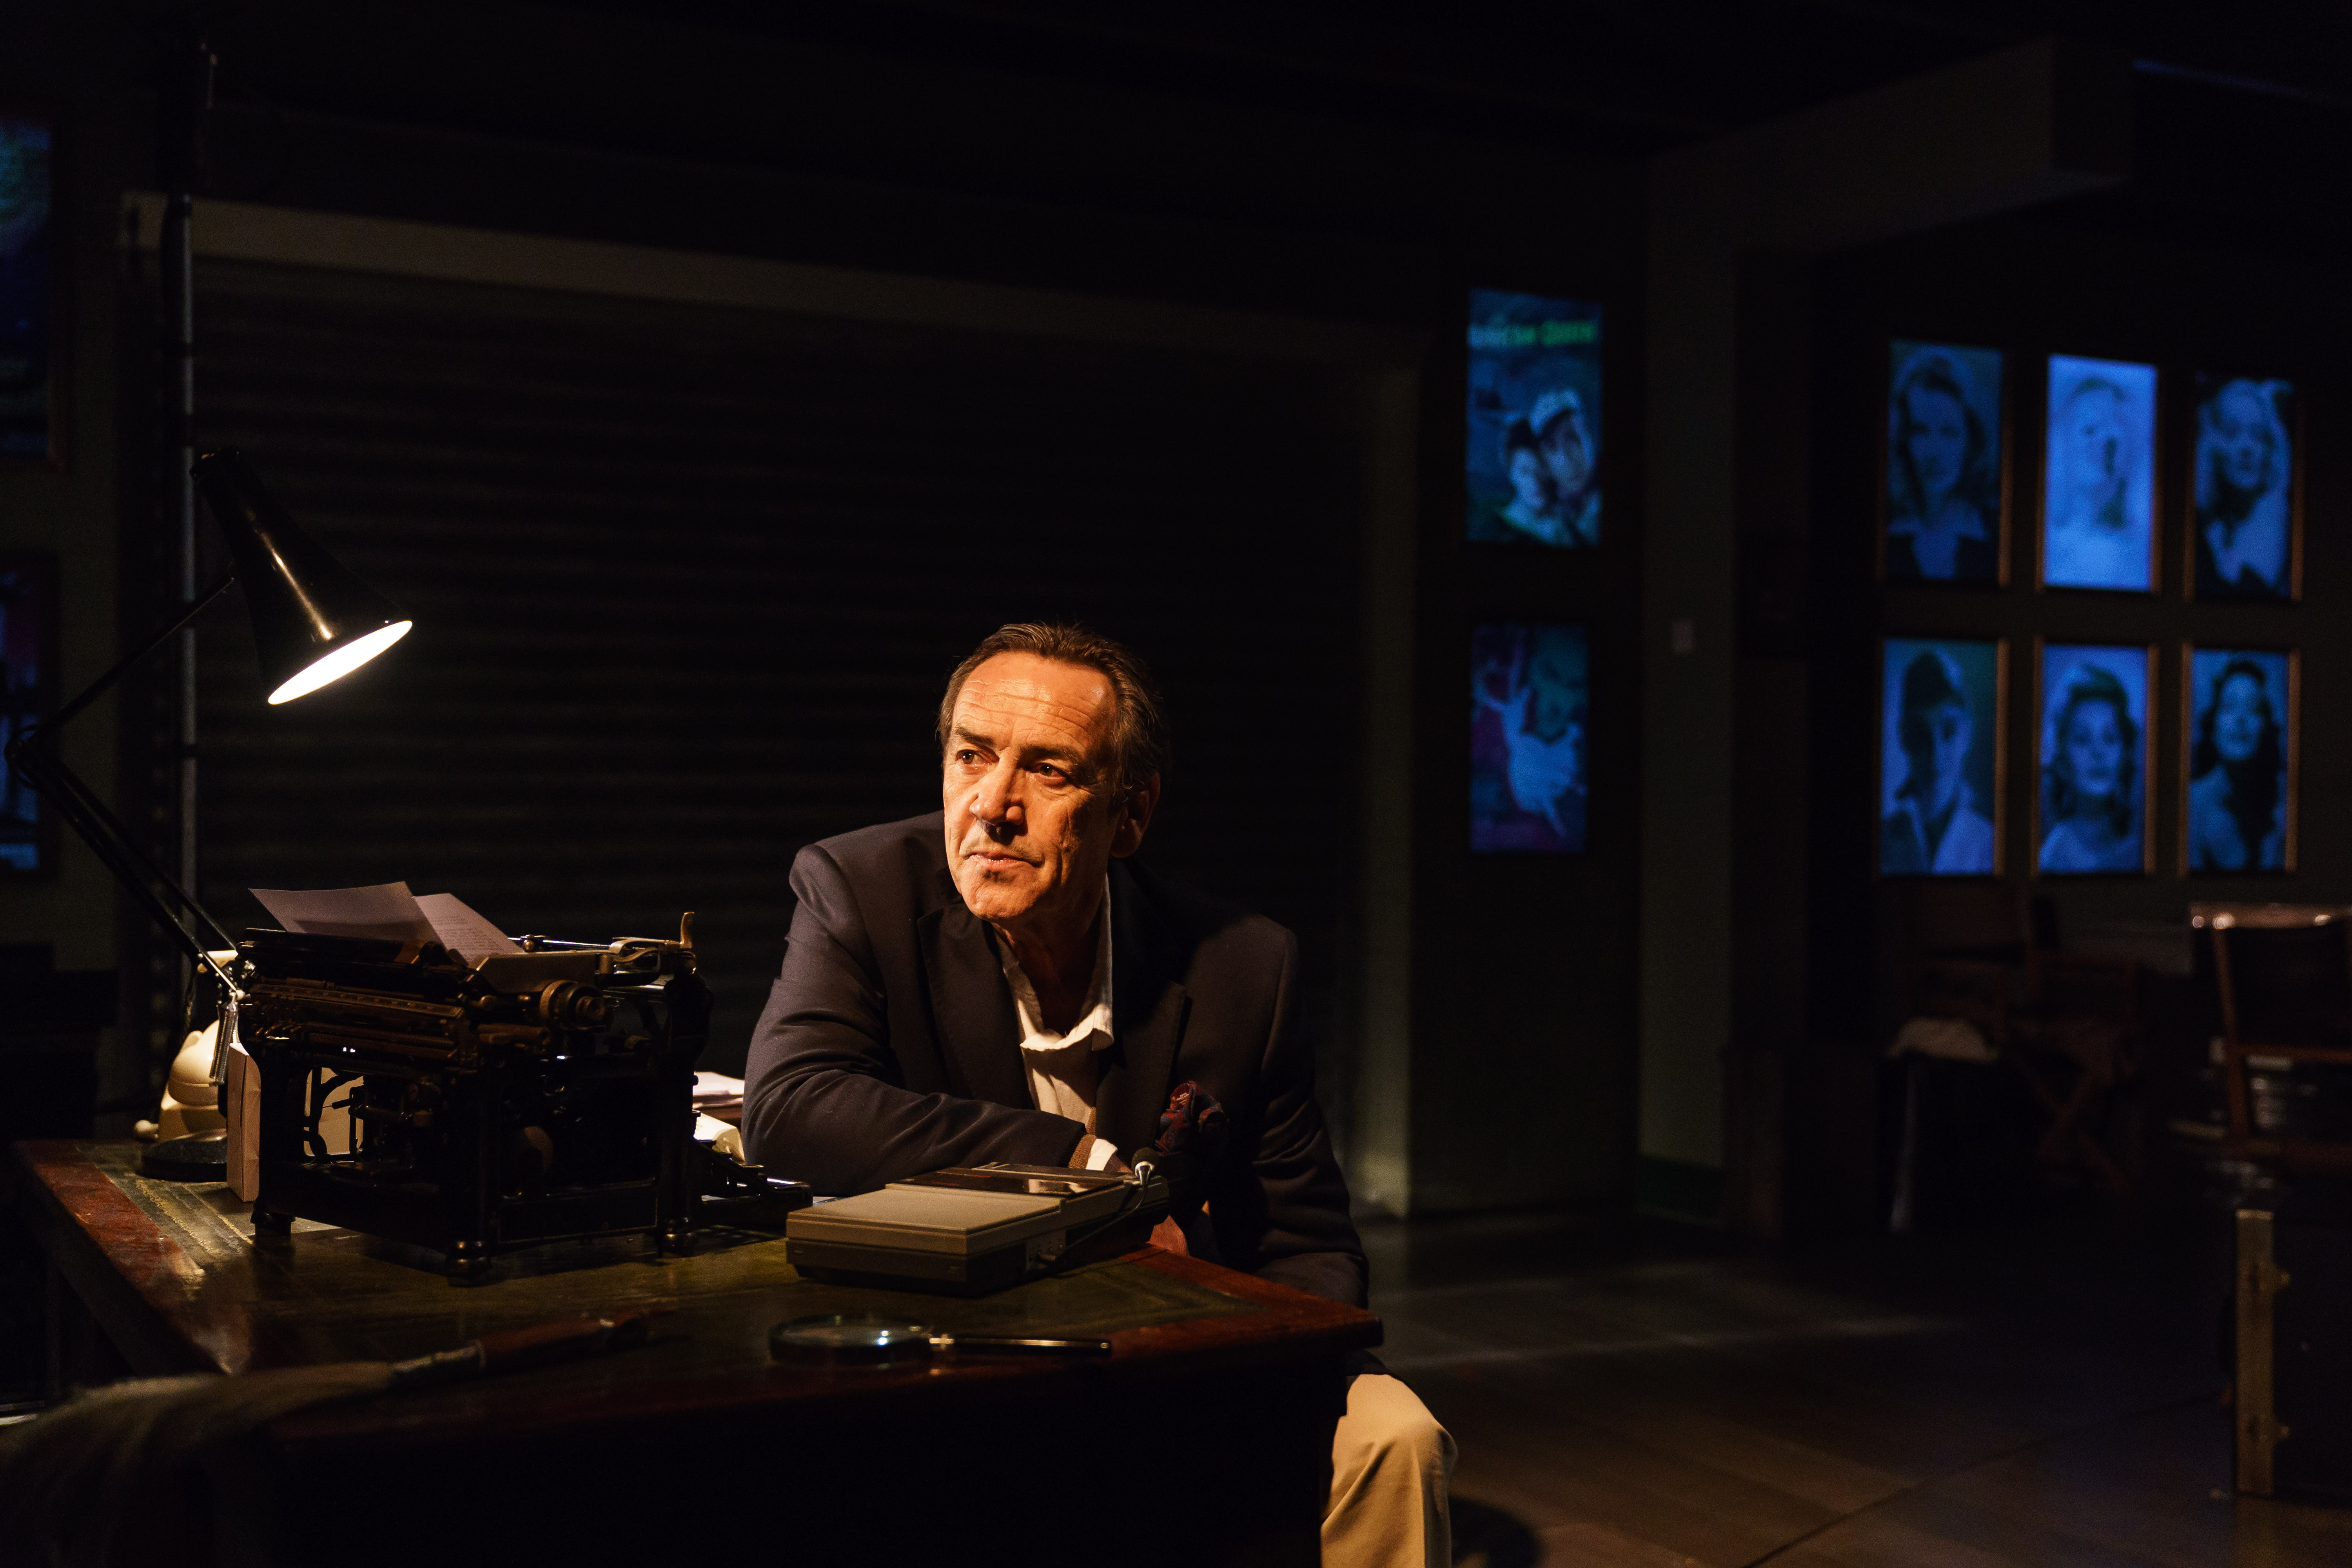 BWW Review: PRISM, Hampstead Theatre